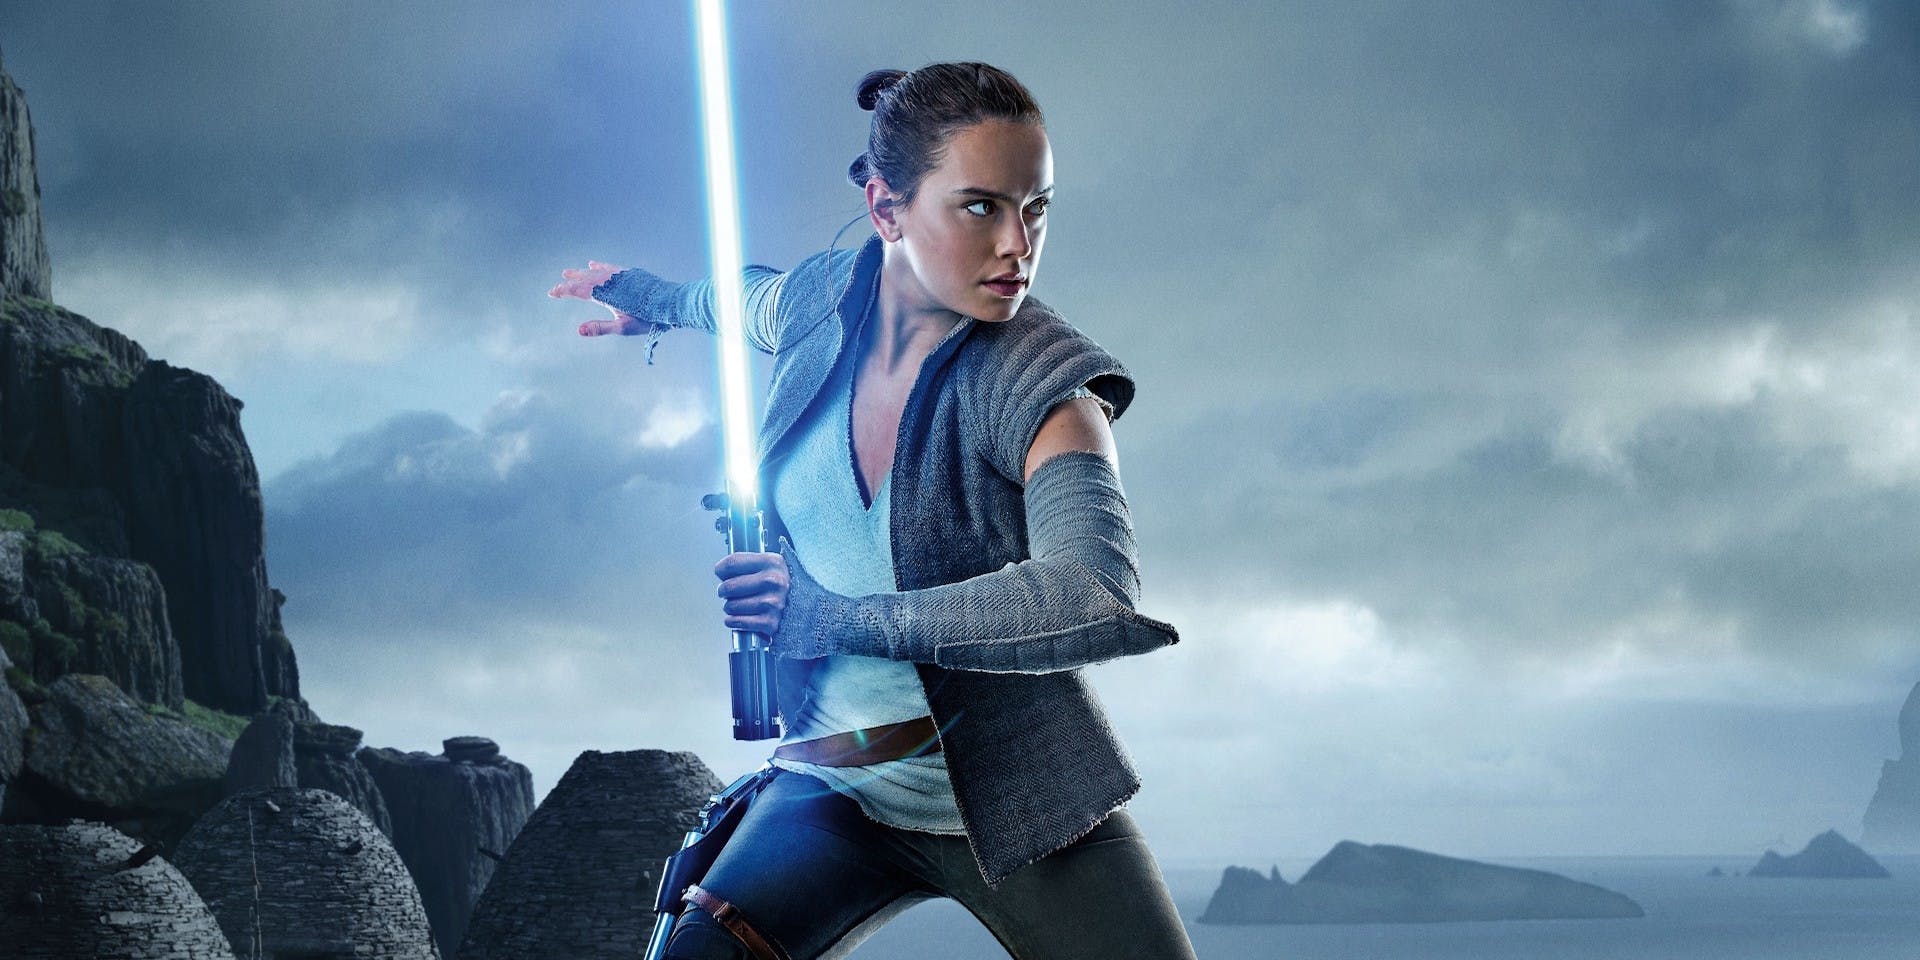 Star Wars: Episode IX Theory Teases Some Familiar Parents For Rey